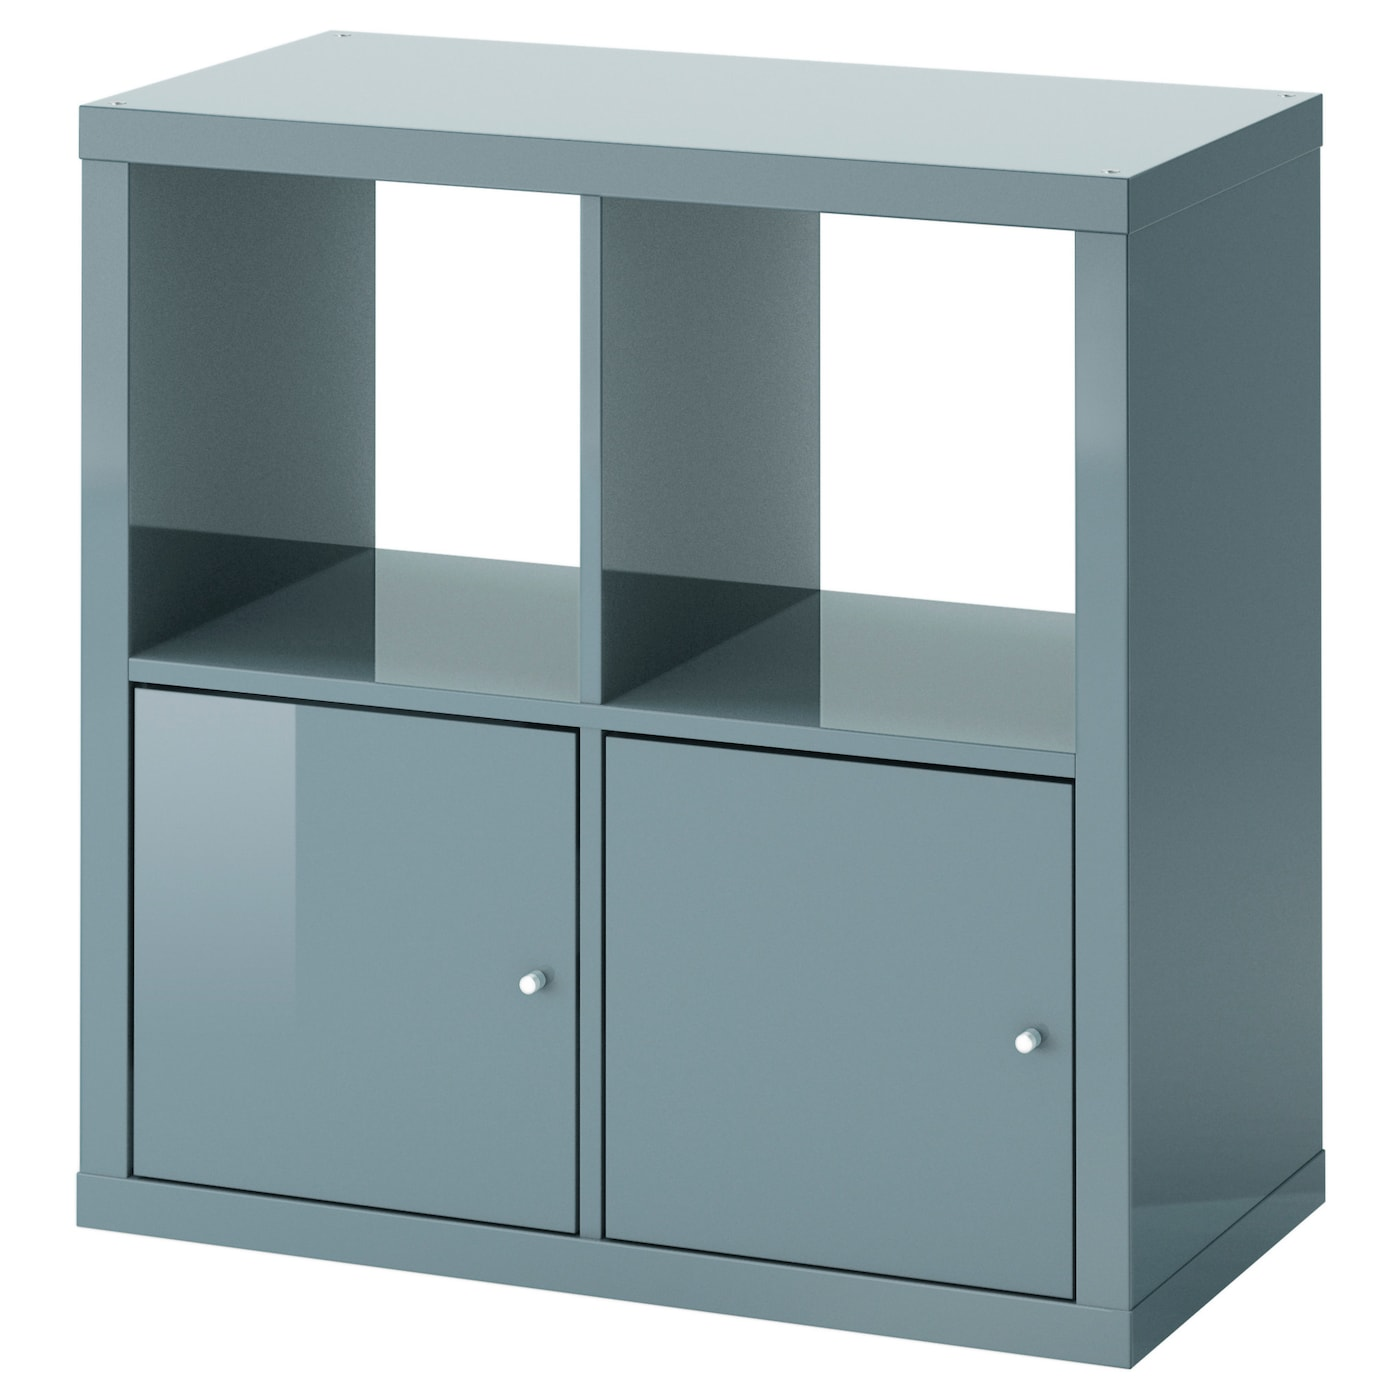 kallax shelving unit with doors high gloss grey turquoise 77x77 cm ikea. Black Bedroom Furniture Sets. Home Design Ideas